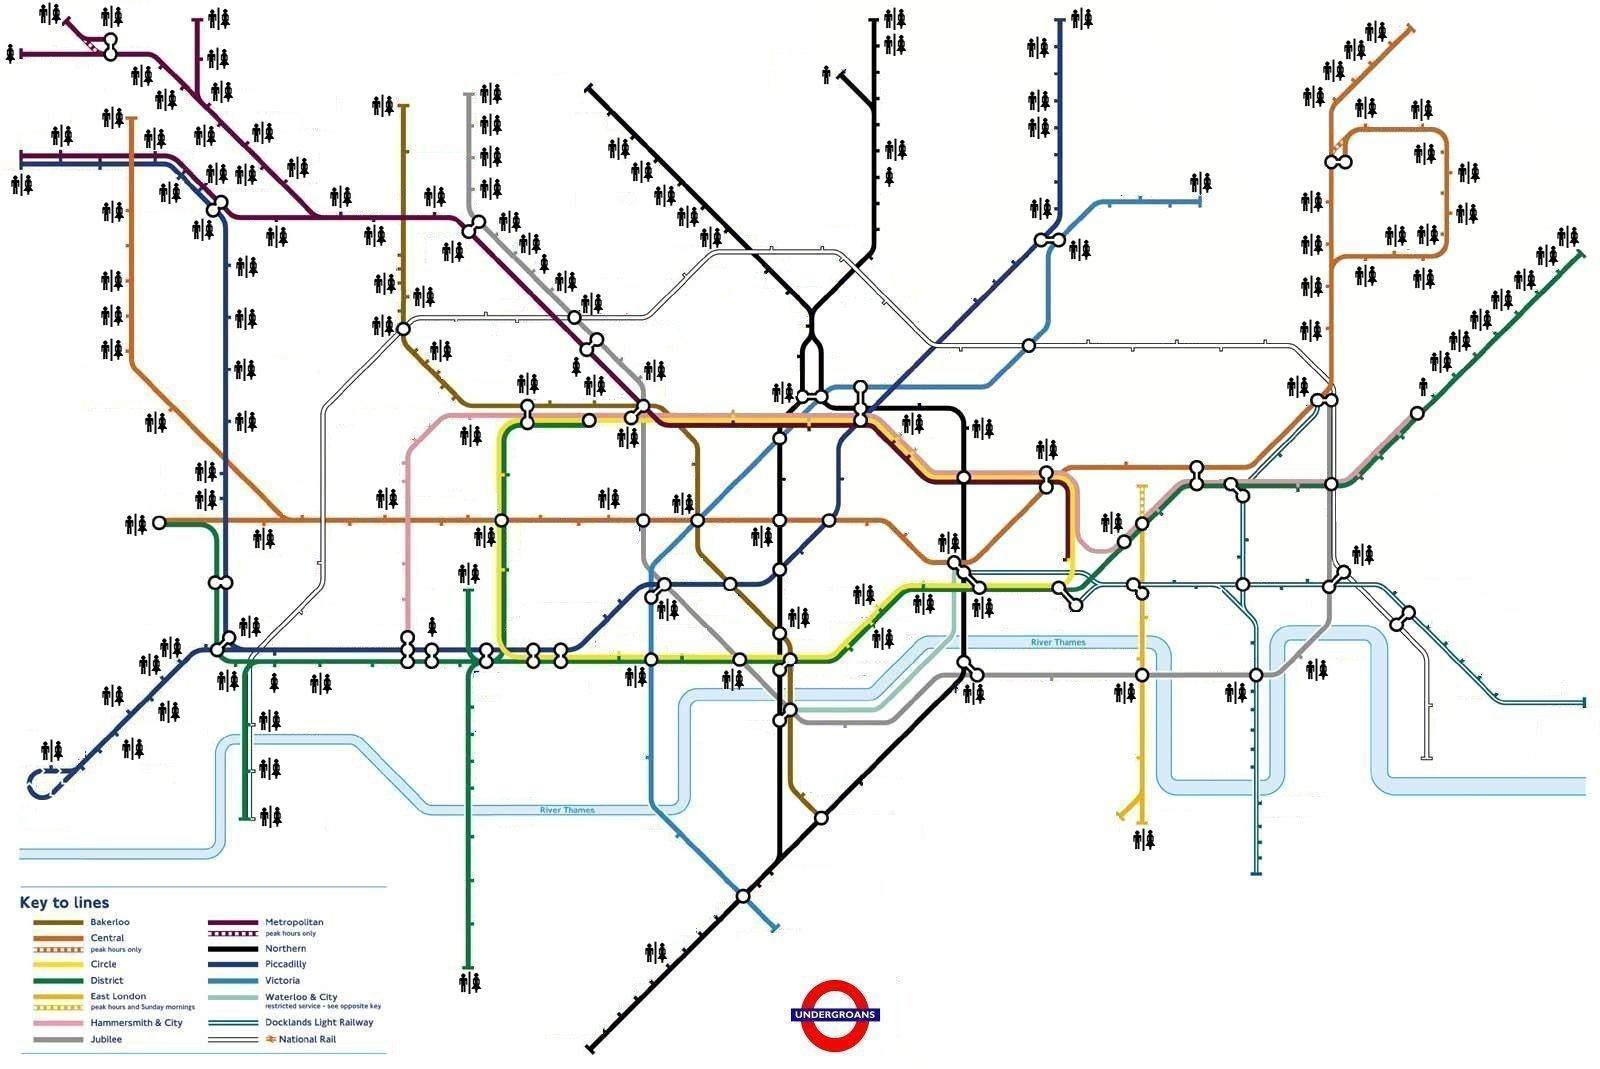 Quirky Tube Maps | Insider London